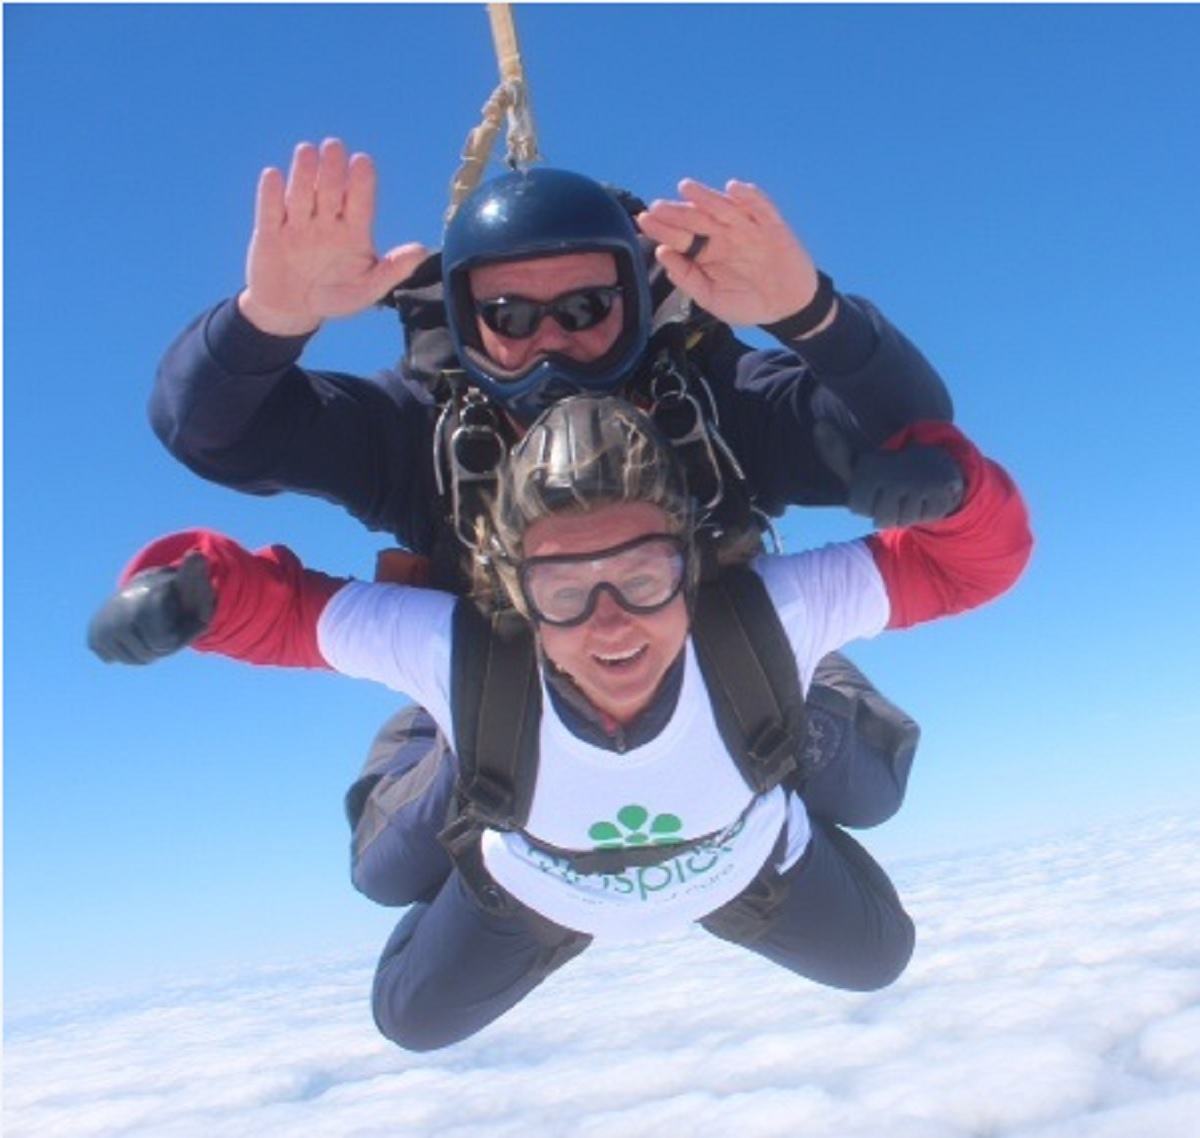 DAREDEVILS: Redditch and Bromsgrove thrillseekers are being invited to do a skydive this year